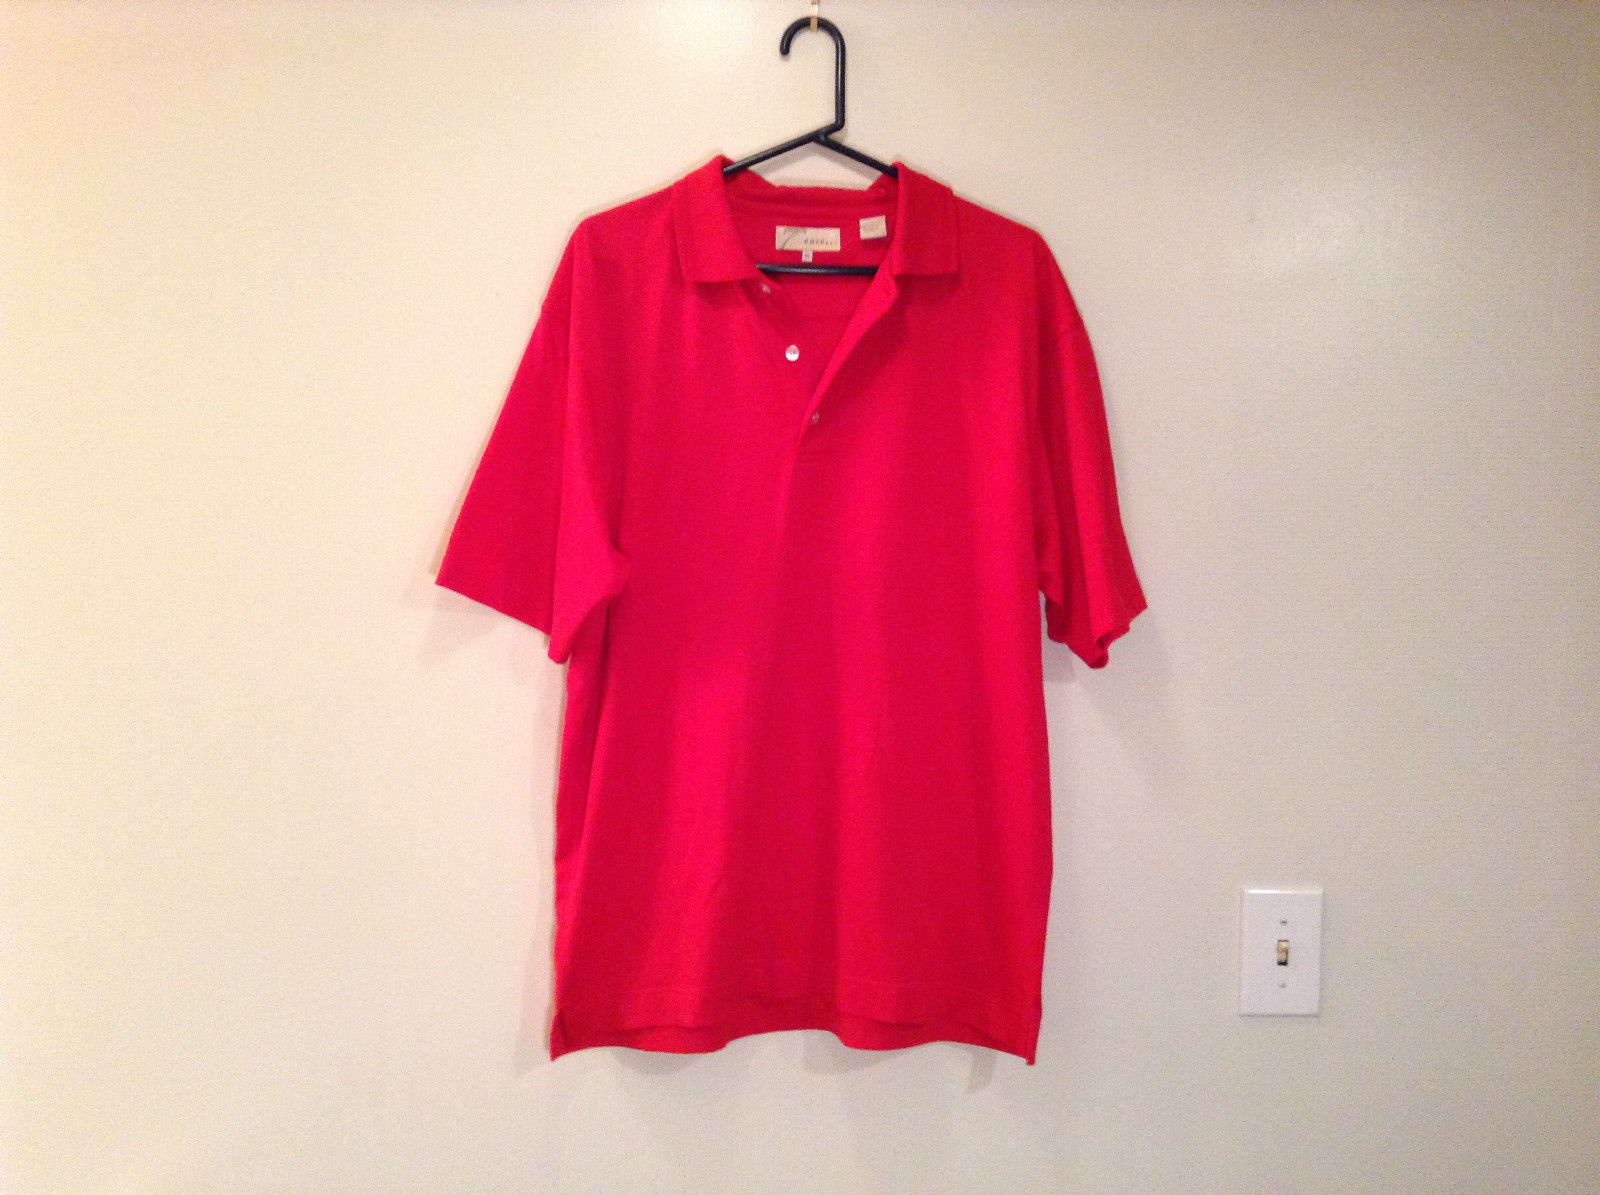 Bright Red Short Sleeve Polo Shirt by Ease Size XL Made in Vietnam